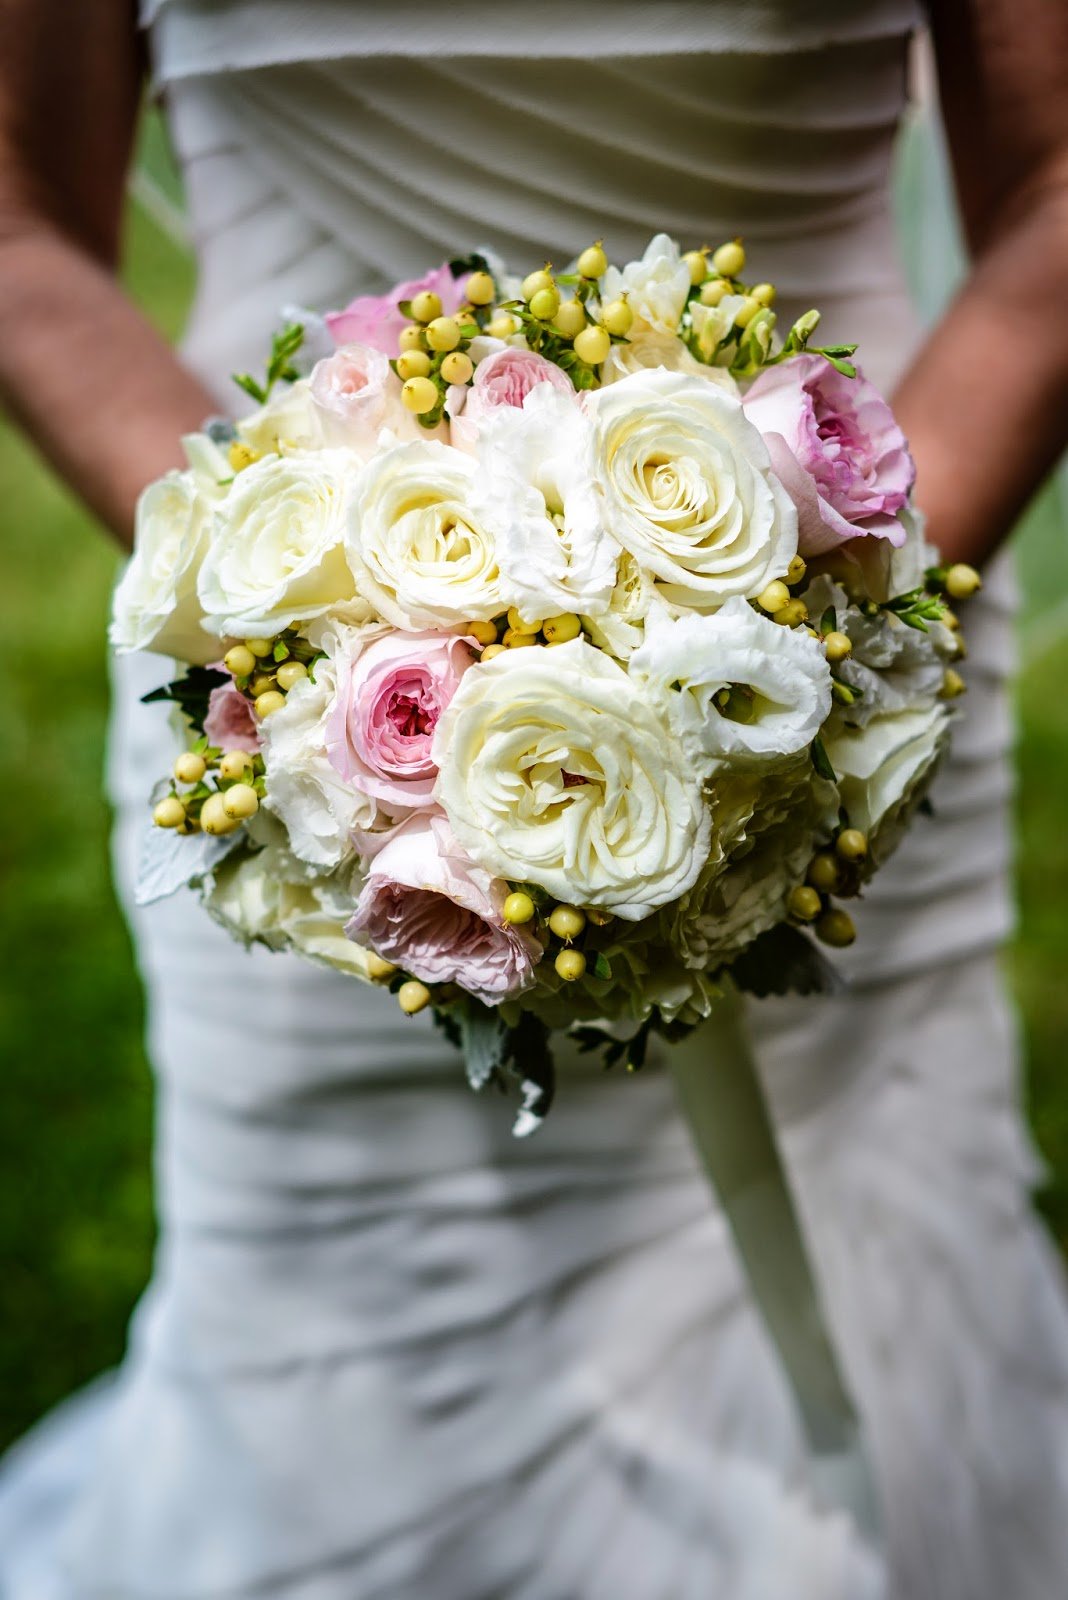 Lake Placid Wedding - The Whiteface Lodge Wedding - Blush and Cream Garden Rose Bouquet - Upstate NY Wedding - Splendid Stems Floral Designs